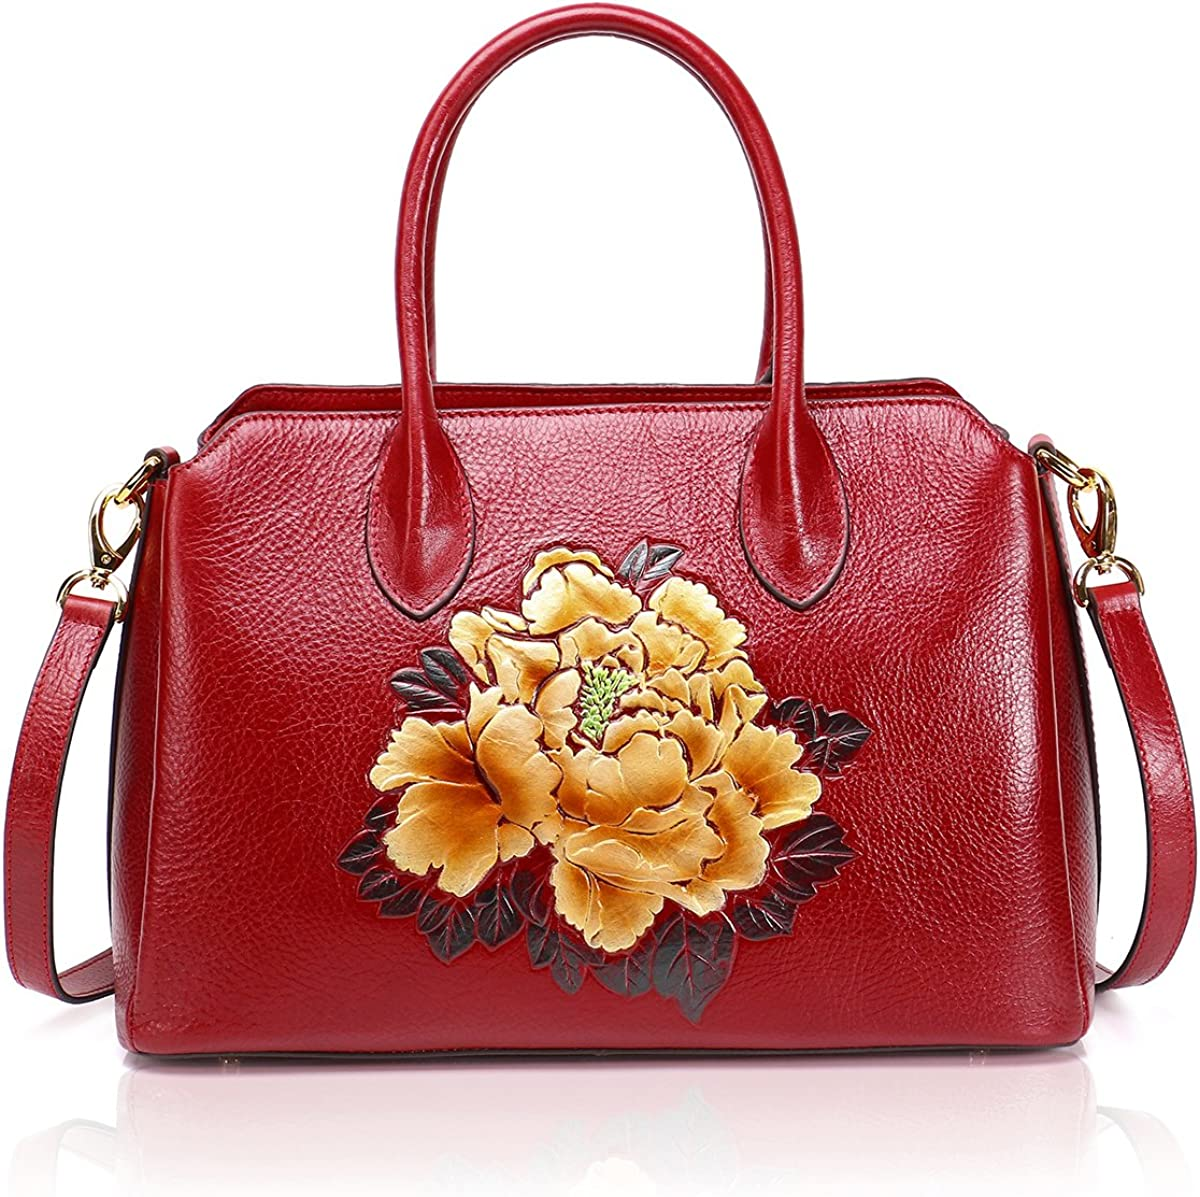 APHISON Designer Unique Embossed Floral Cowhide Leather Tote Style Ladies Top Handle Bags Handbags